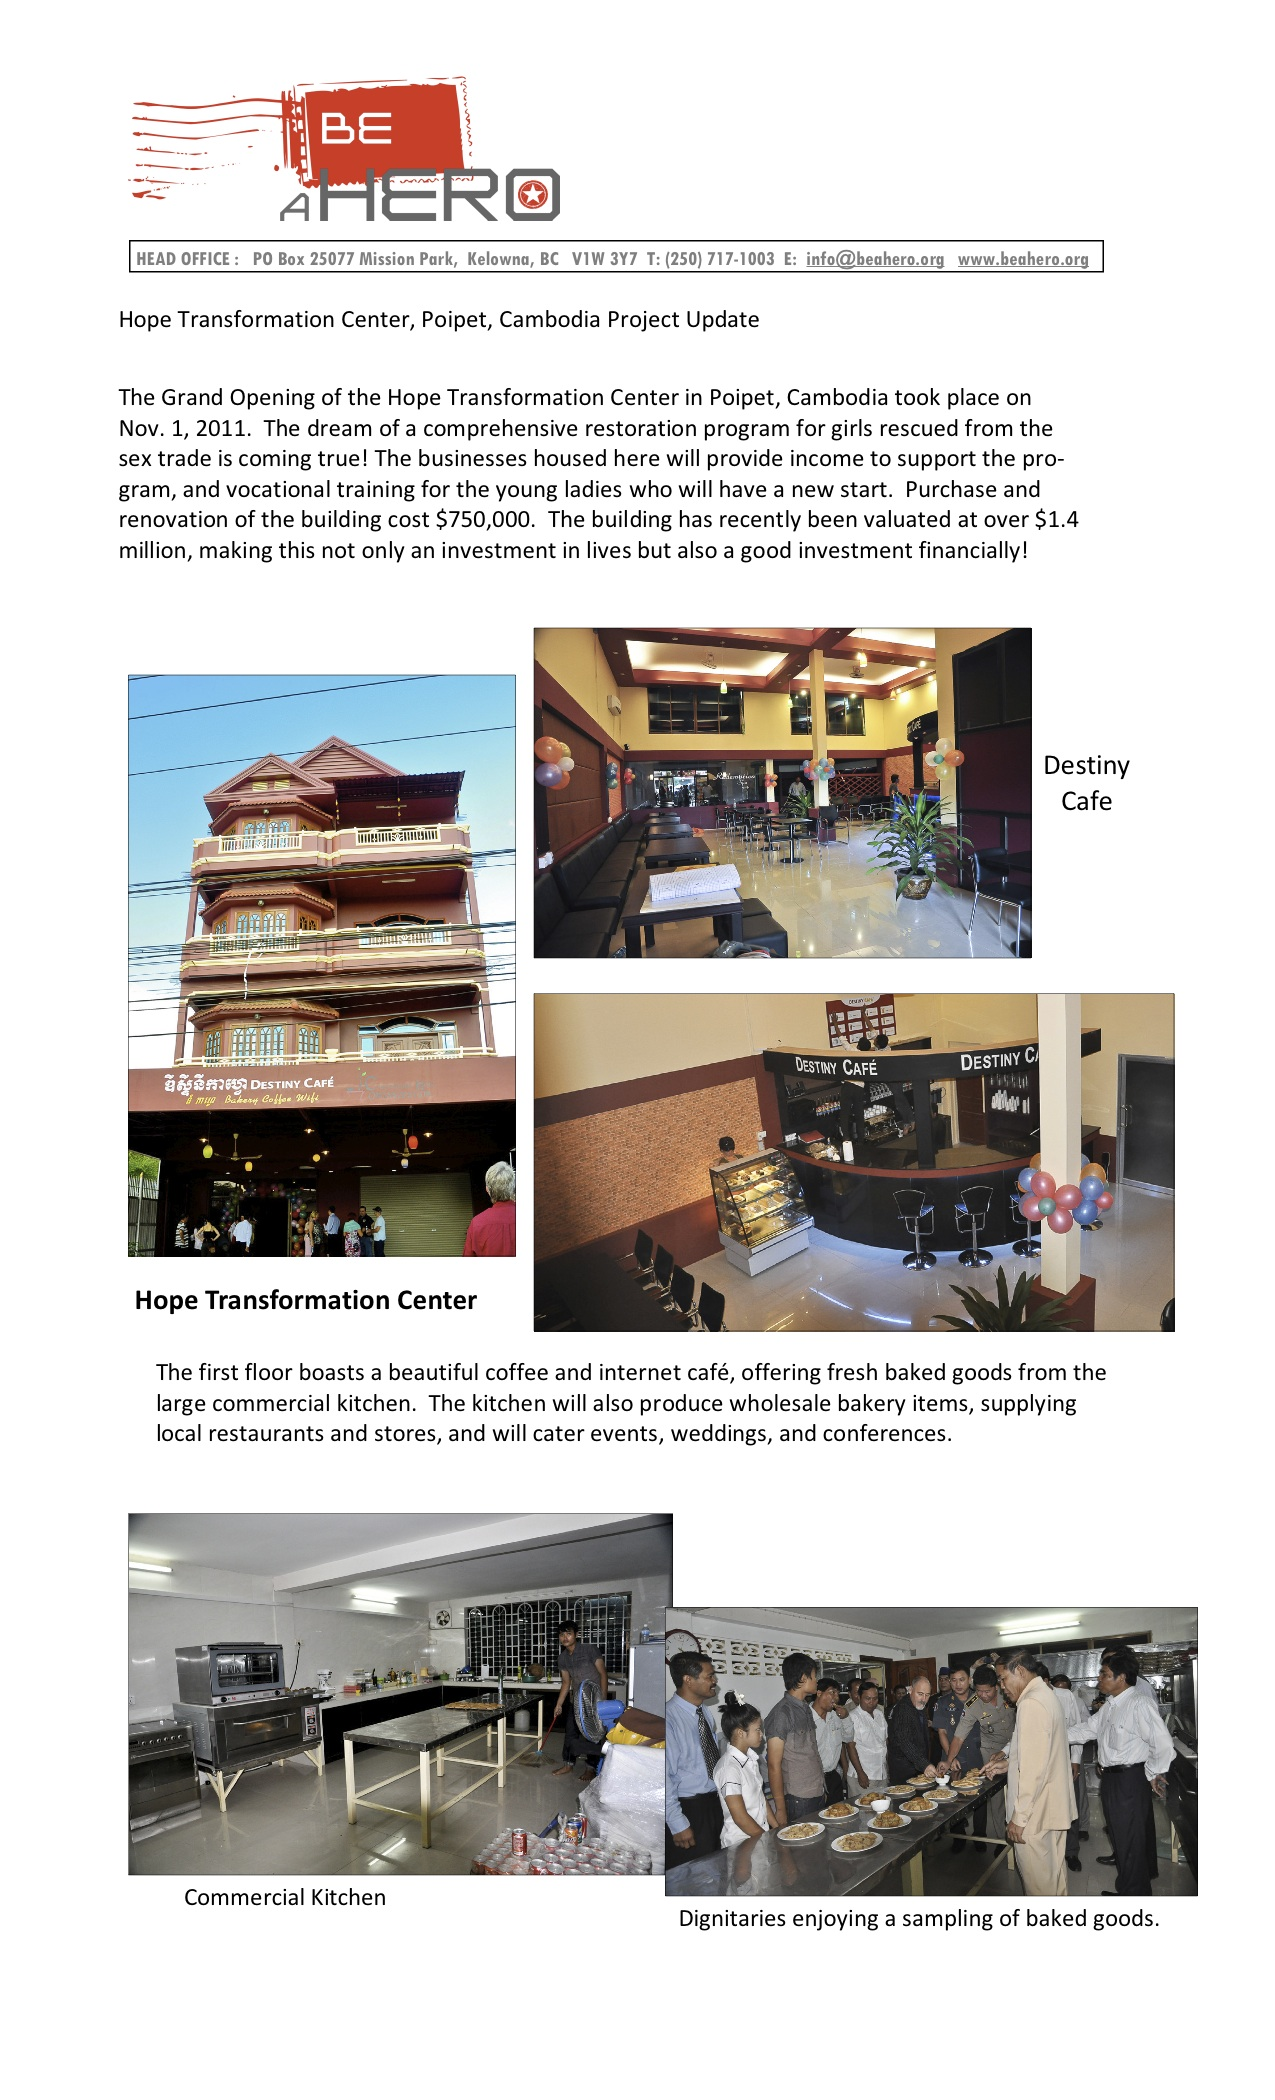 Cambodia-Hope-Transformation-Center-Completed-Project-Report.jpg